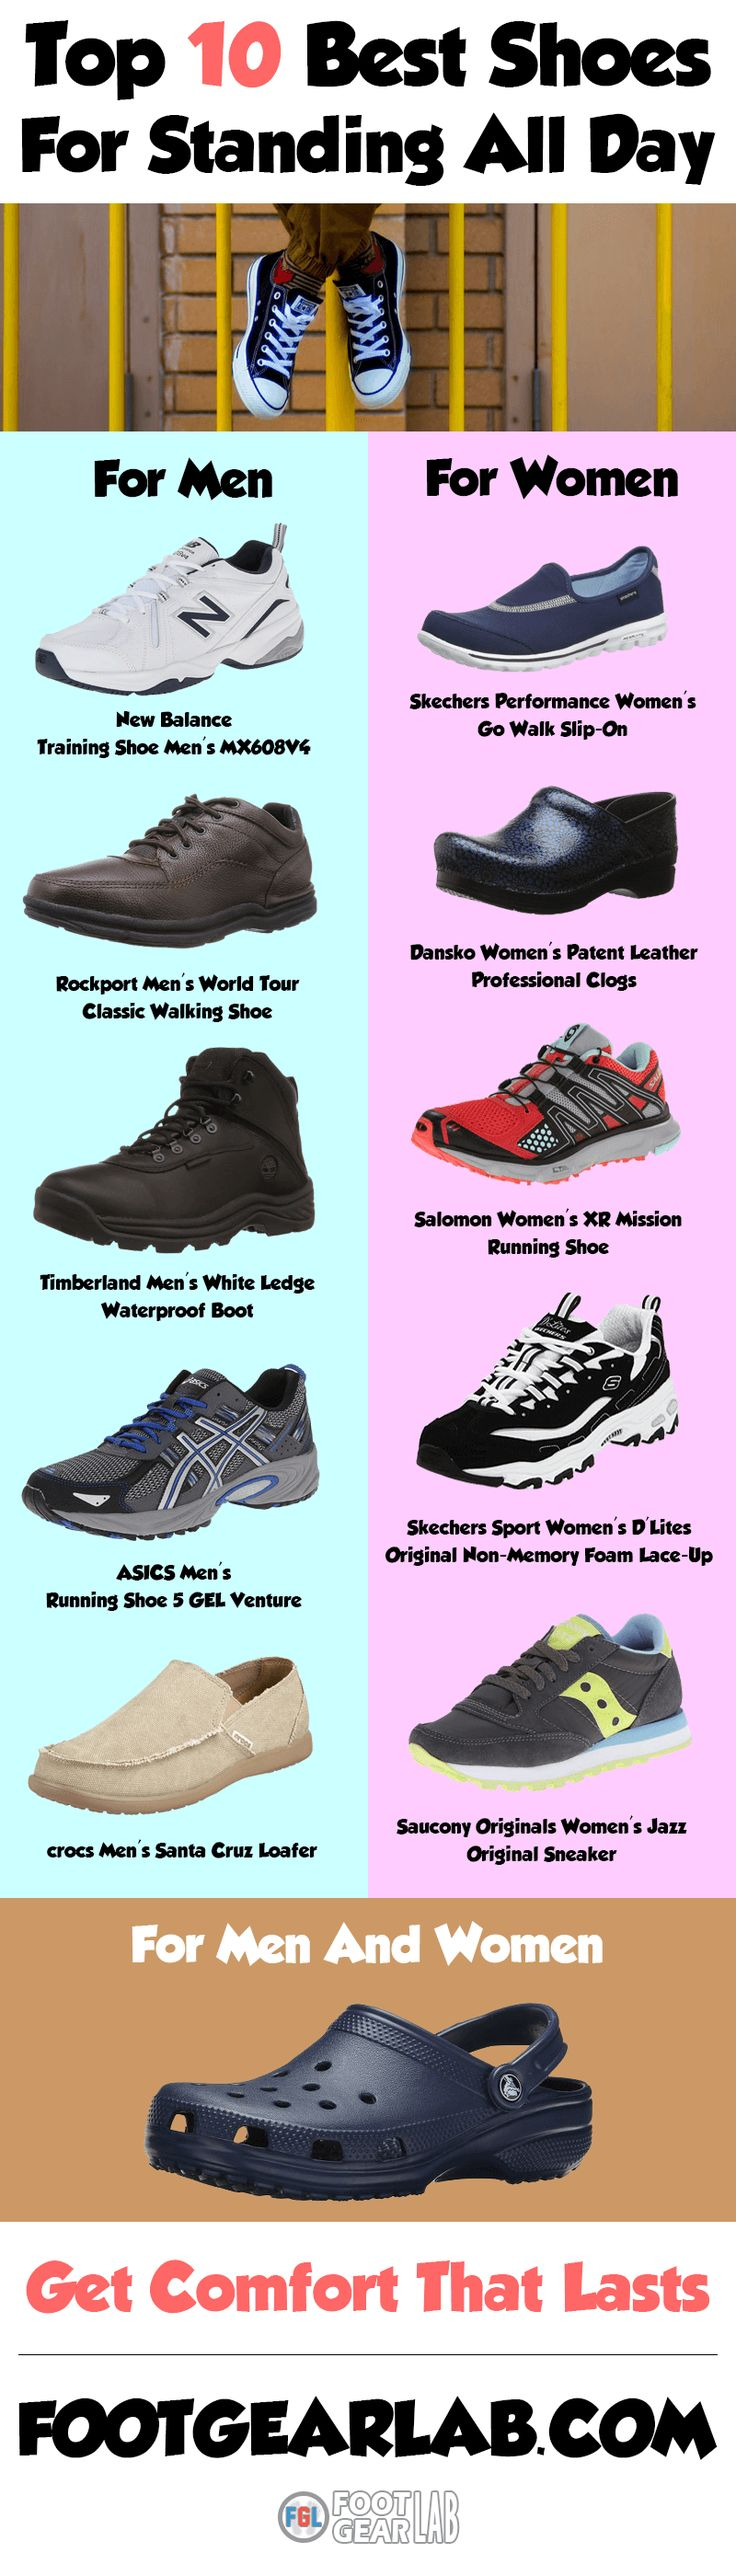 13 Best Best Shoes For Standing All Day Images On